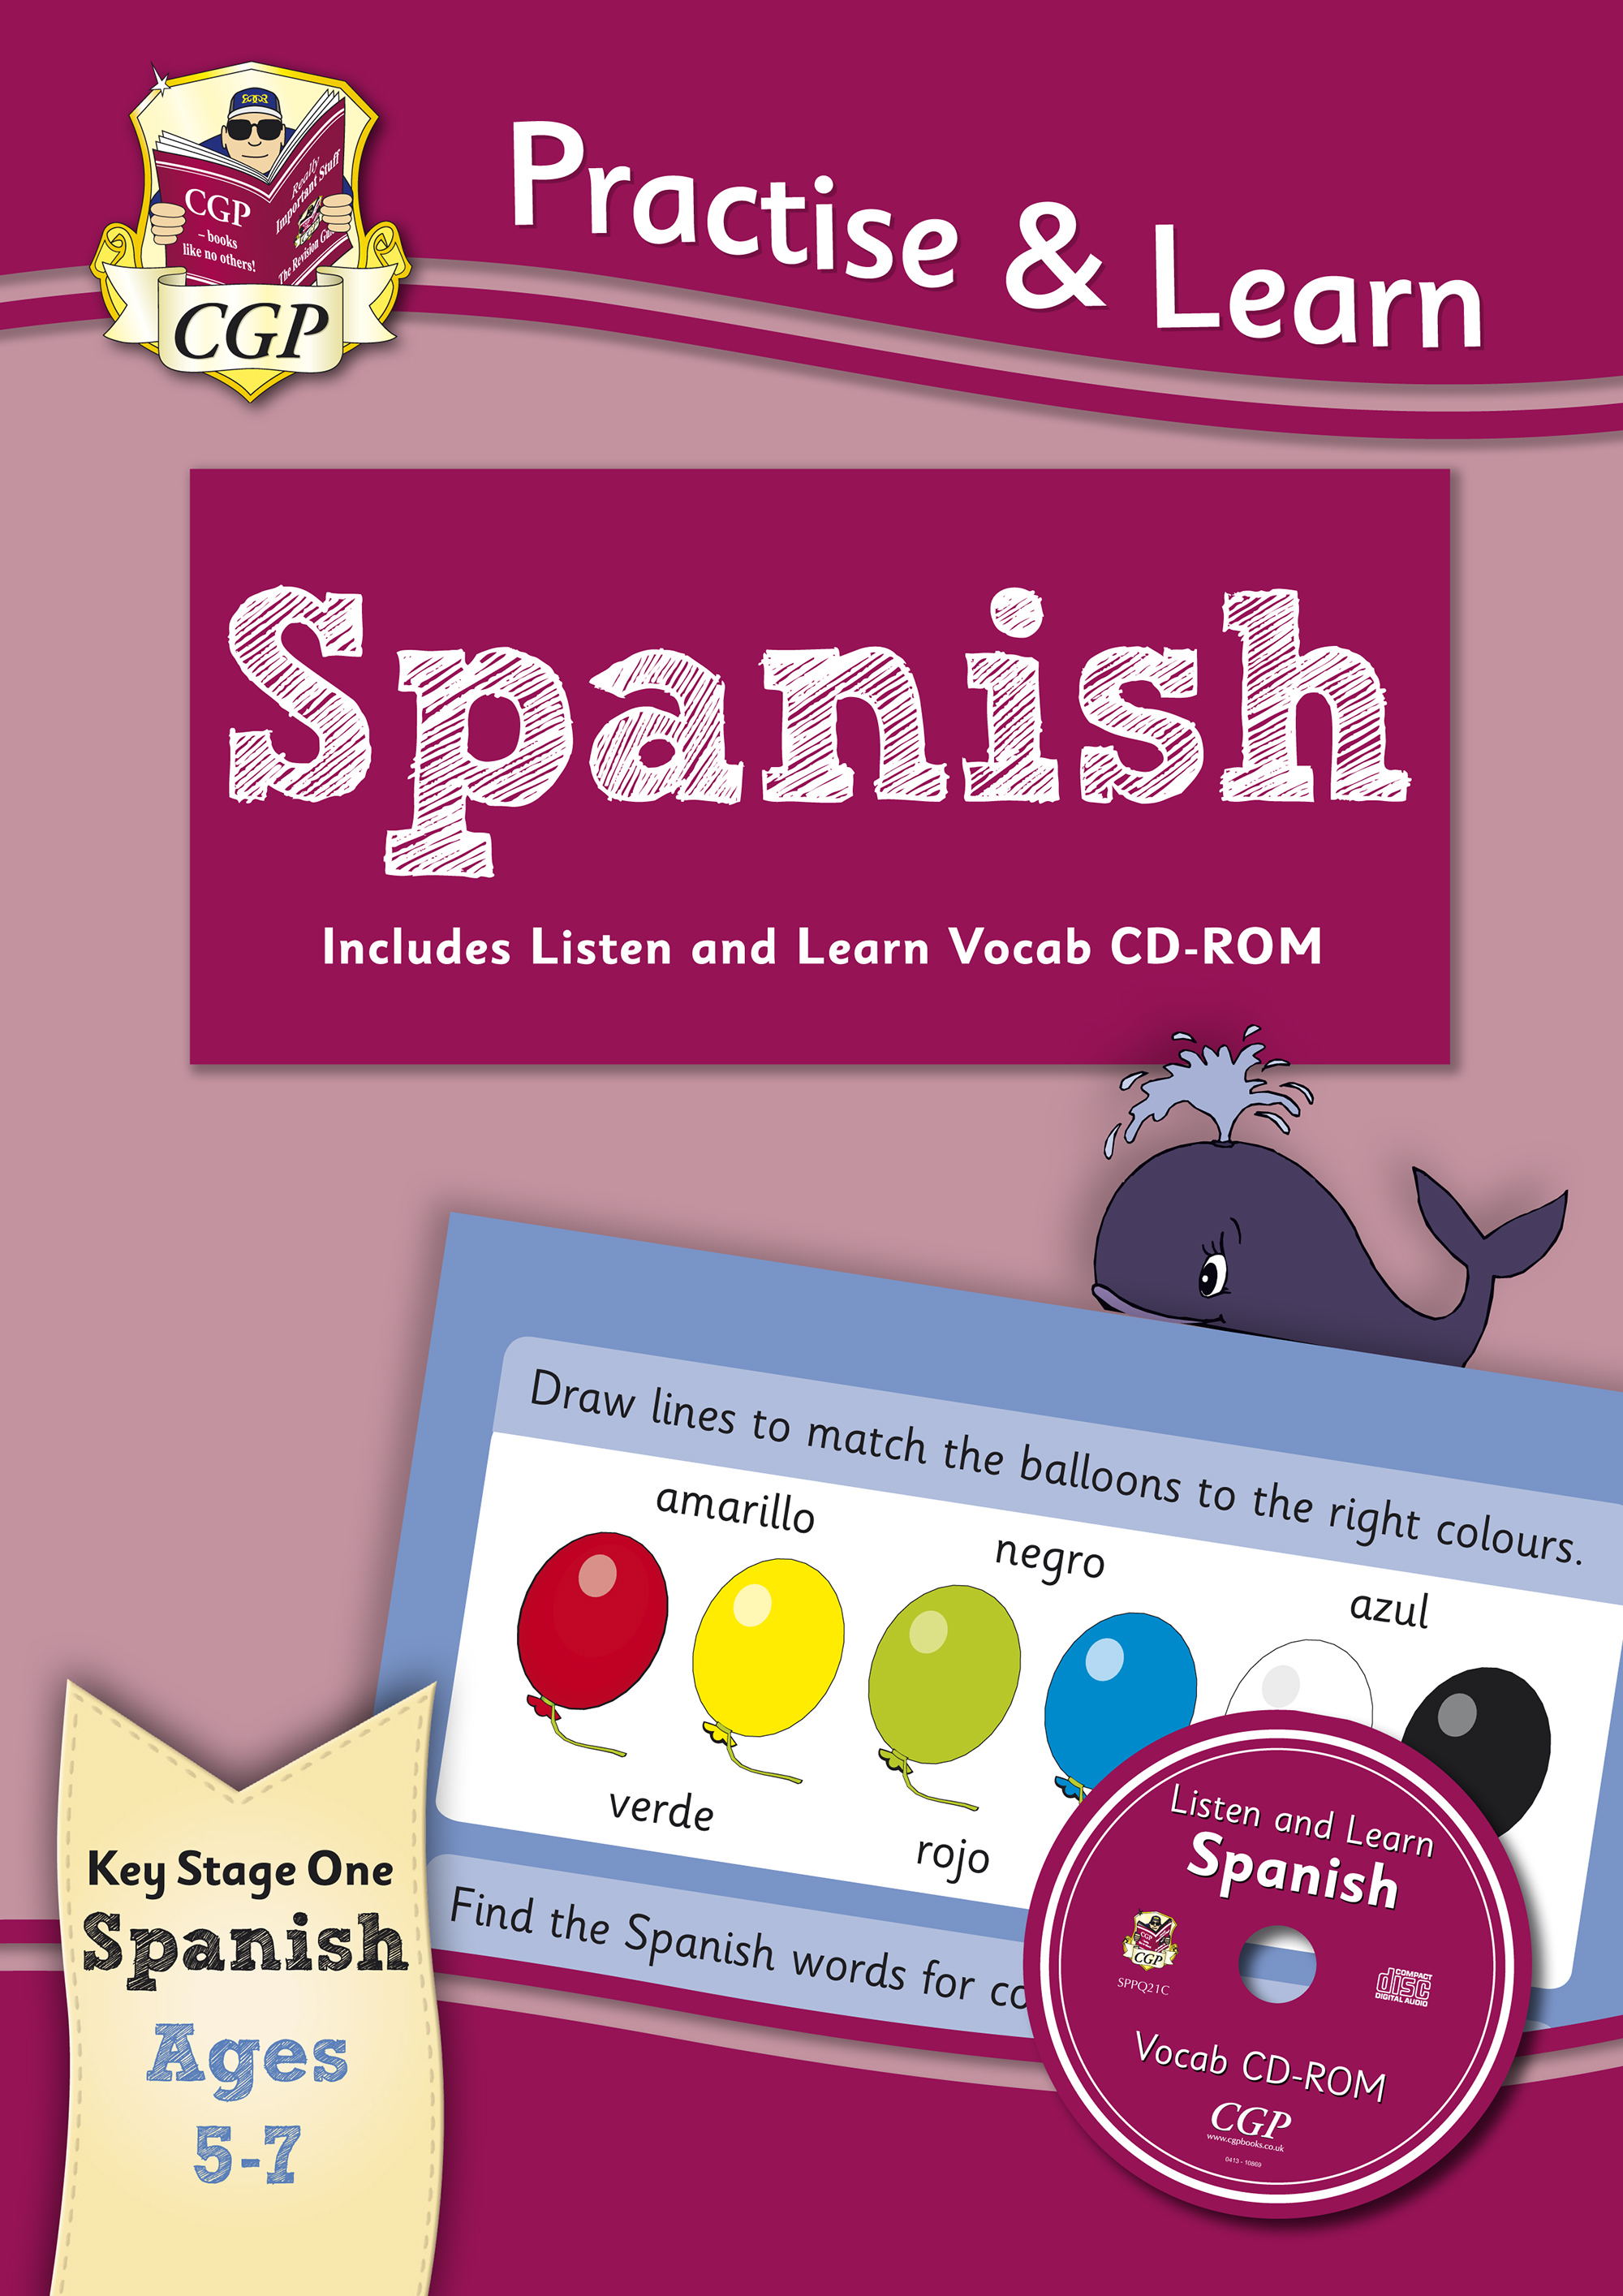 SPPQ12 - New Curriculum Practise & Learn: Spanish for Ages 5-7 - with vocab CD-ROM